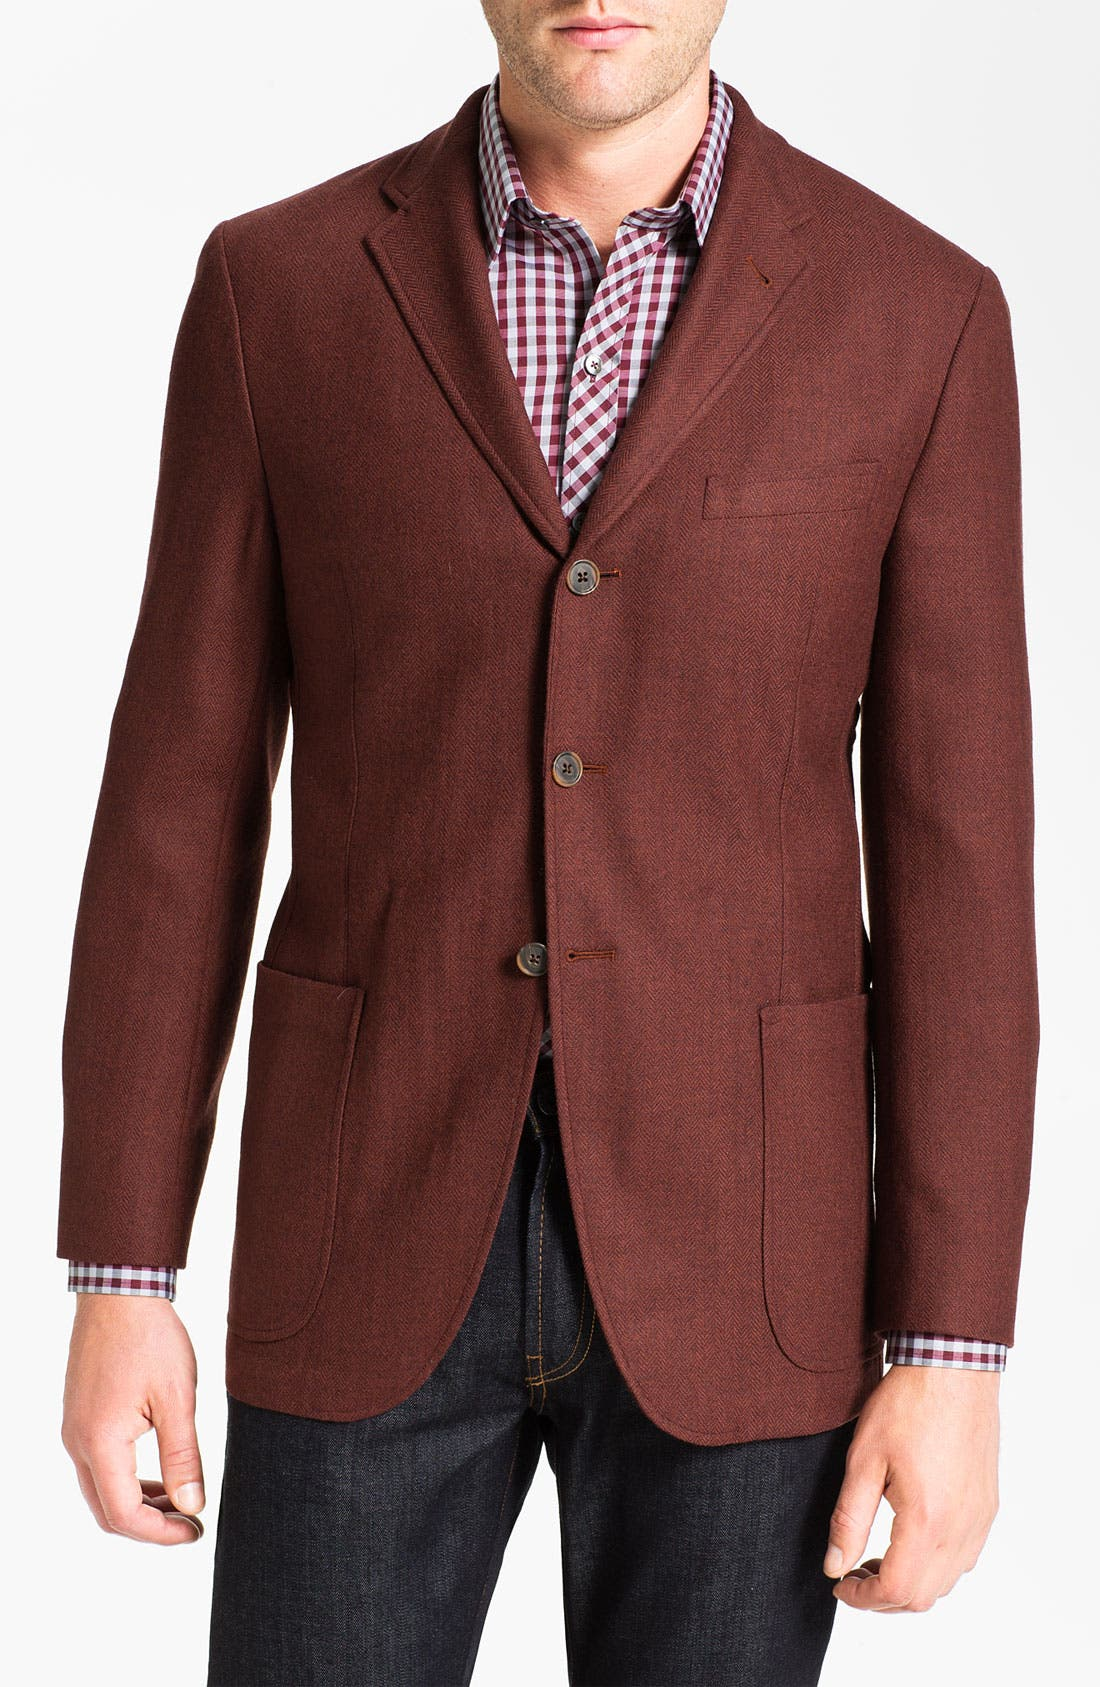 Main Image - Joseph Abboud Three Button Sportcoat